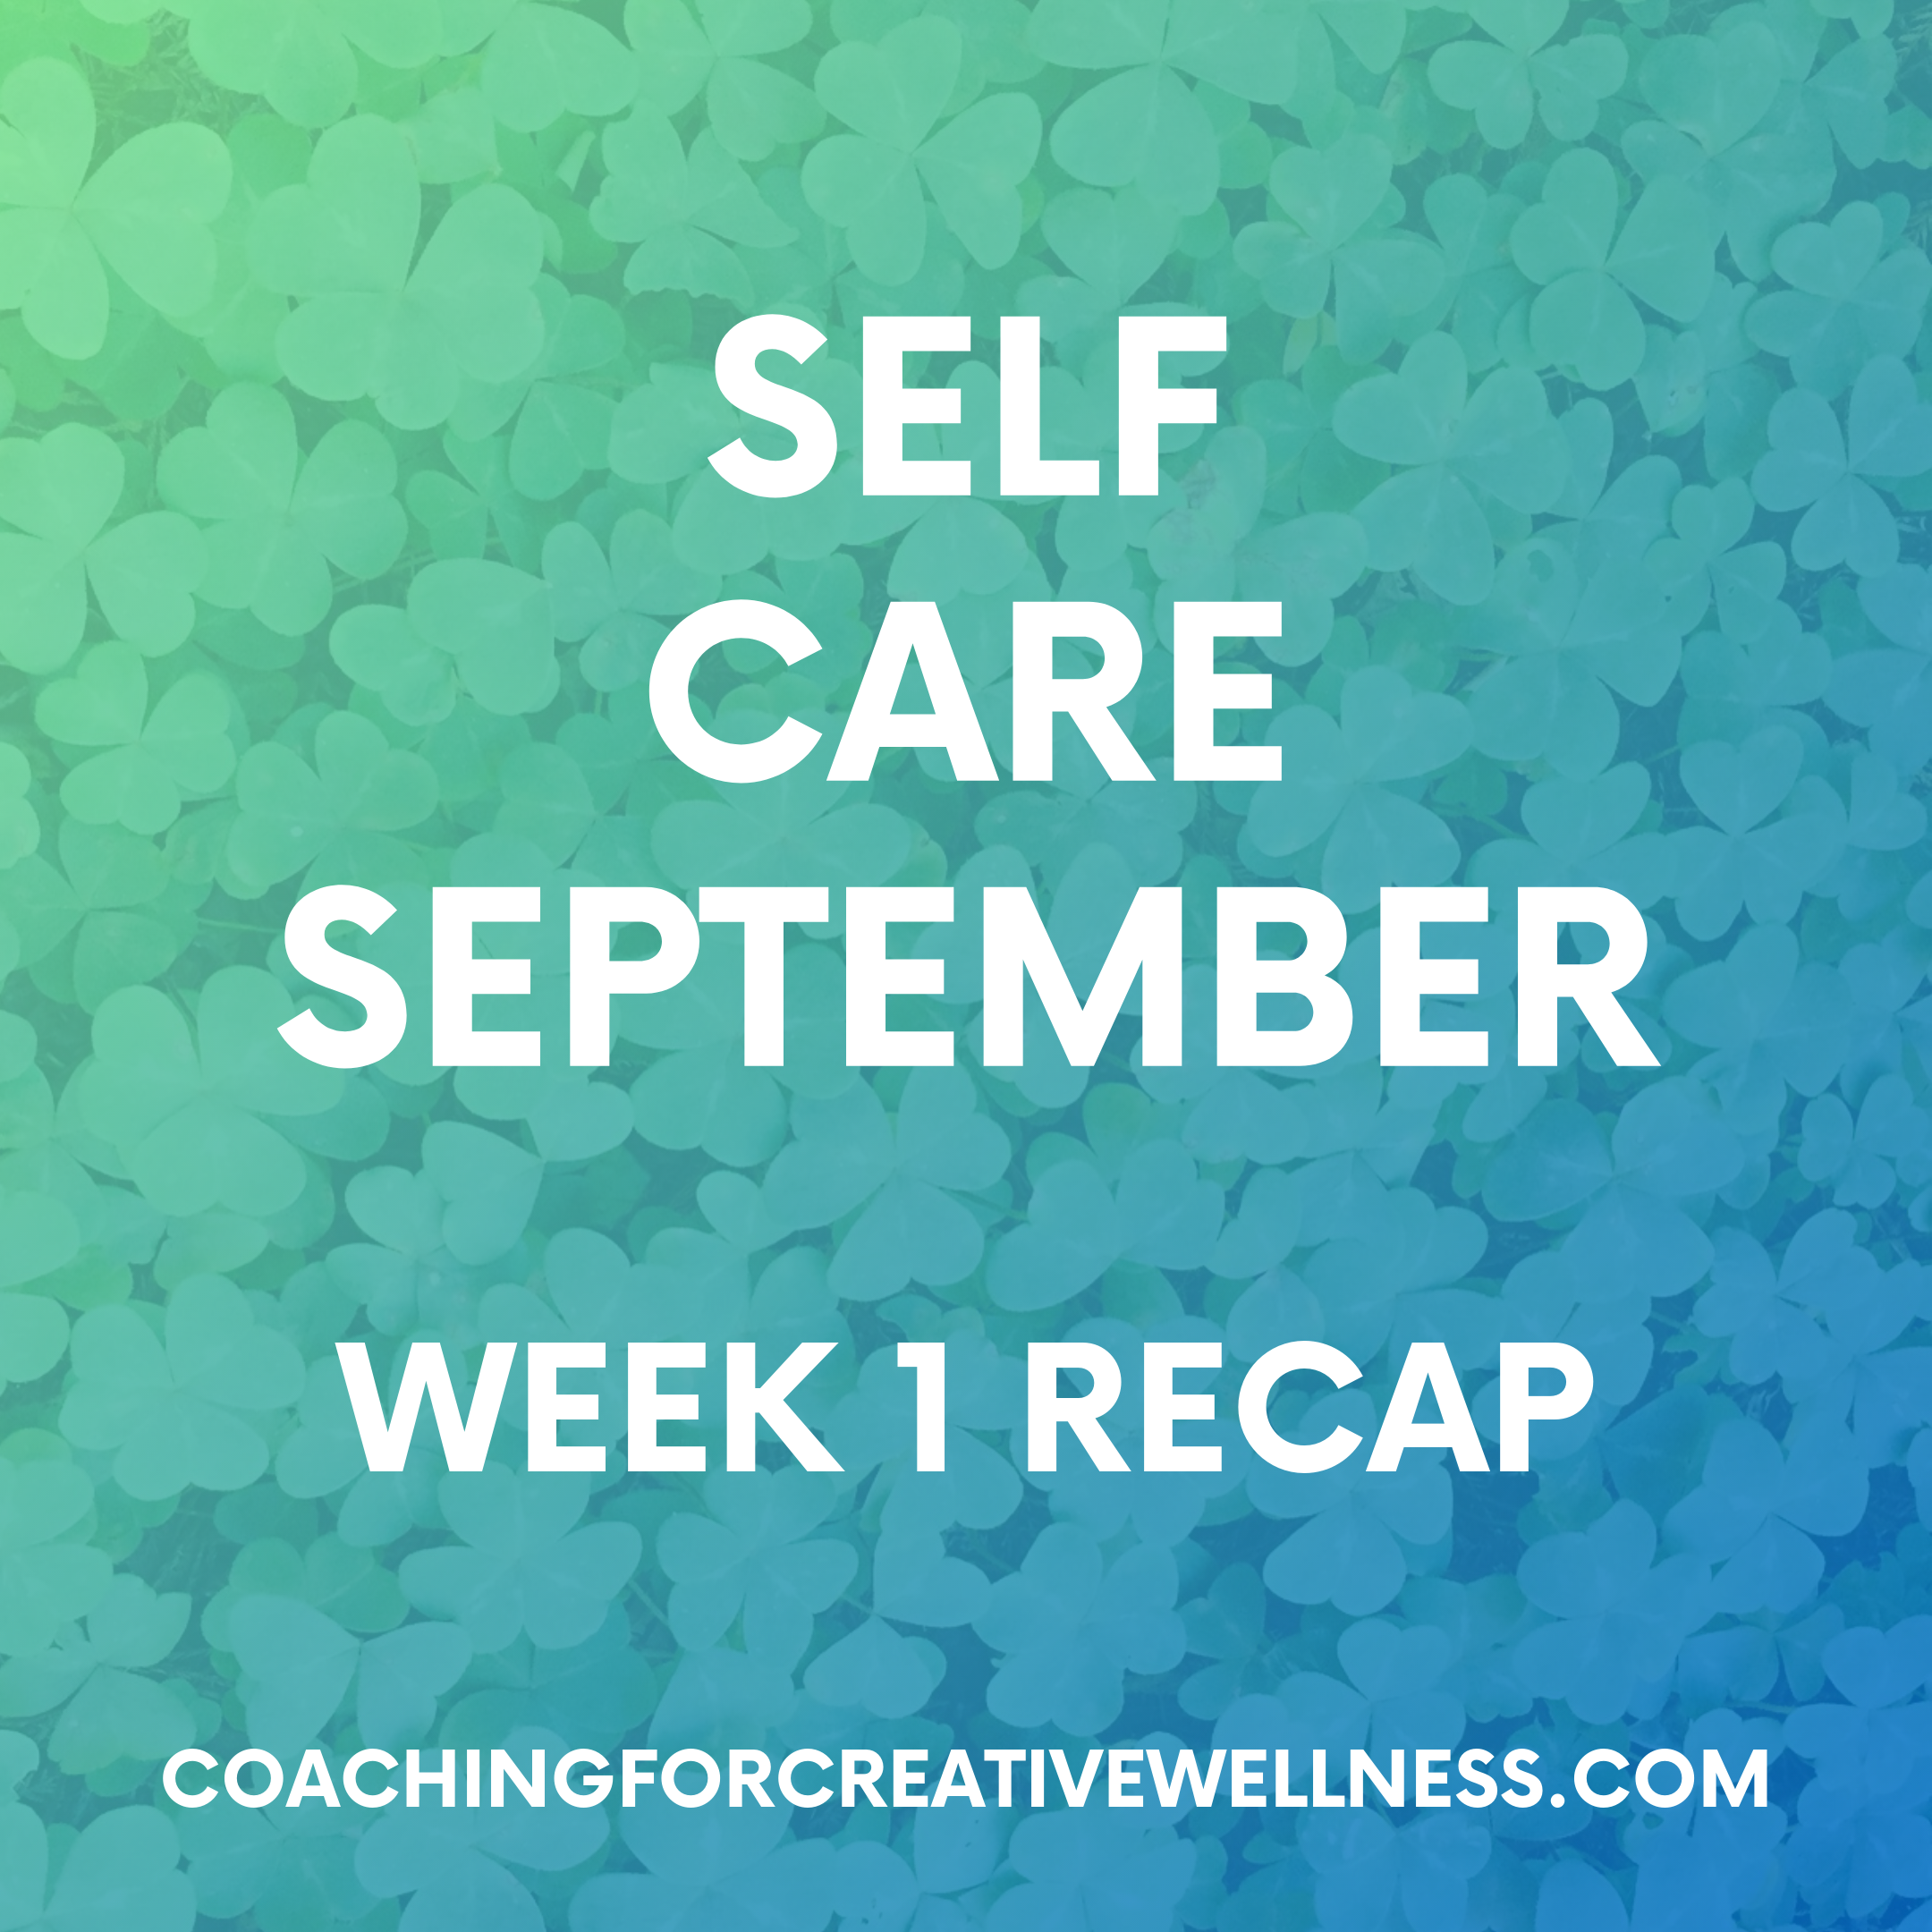 Coaching-for-Creative-Wellness-Self-Care-September-recap-1.png